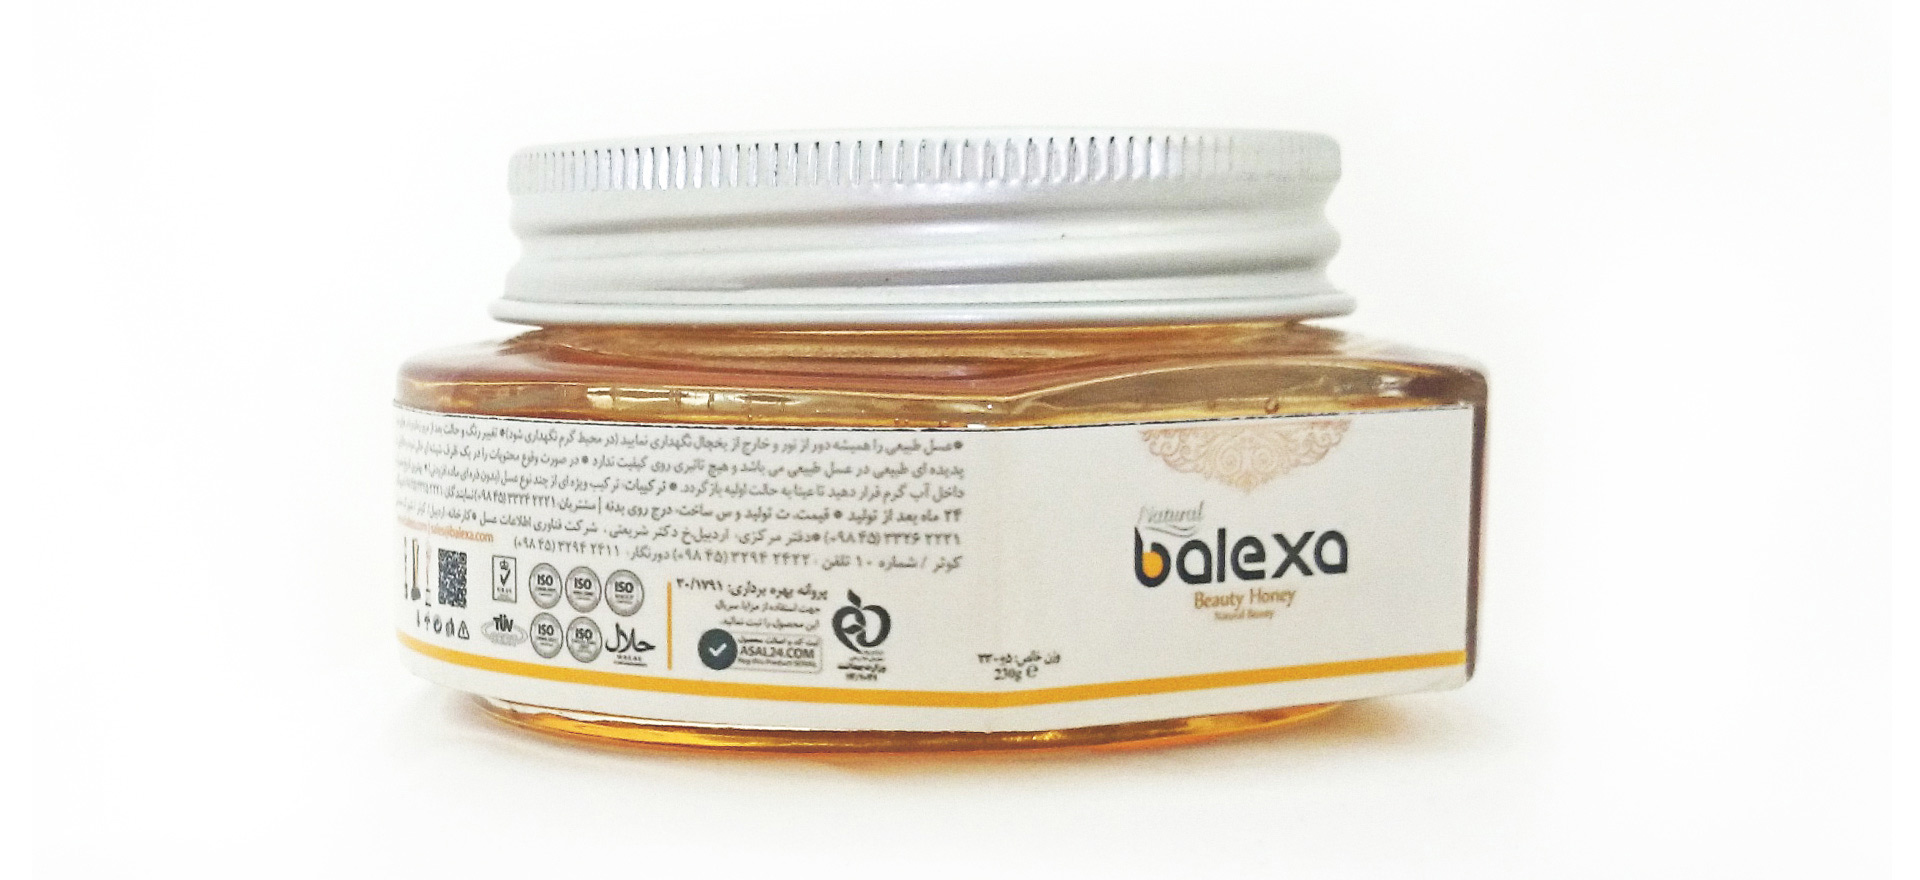 balexa - beauty at health